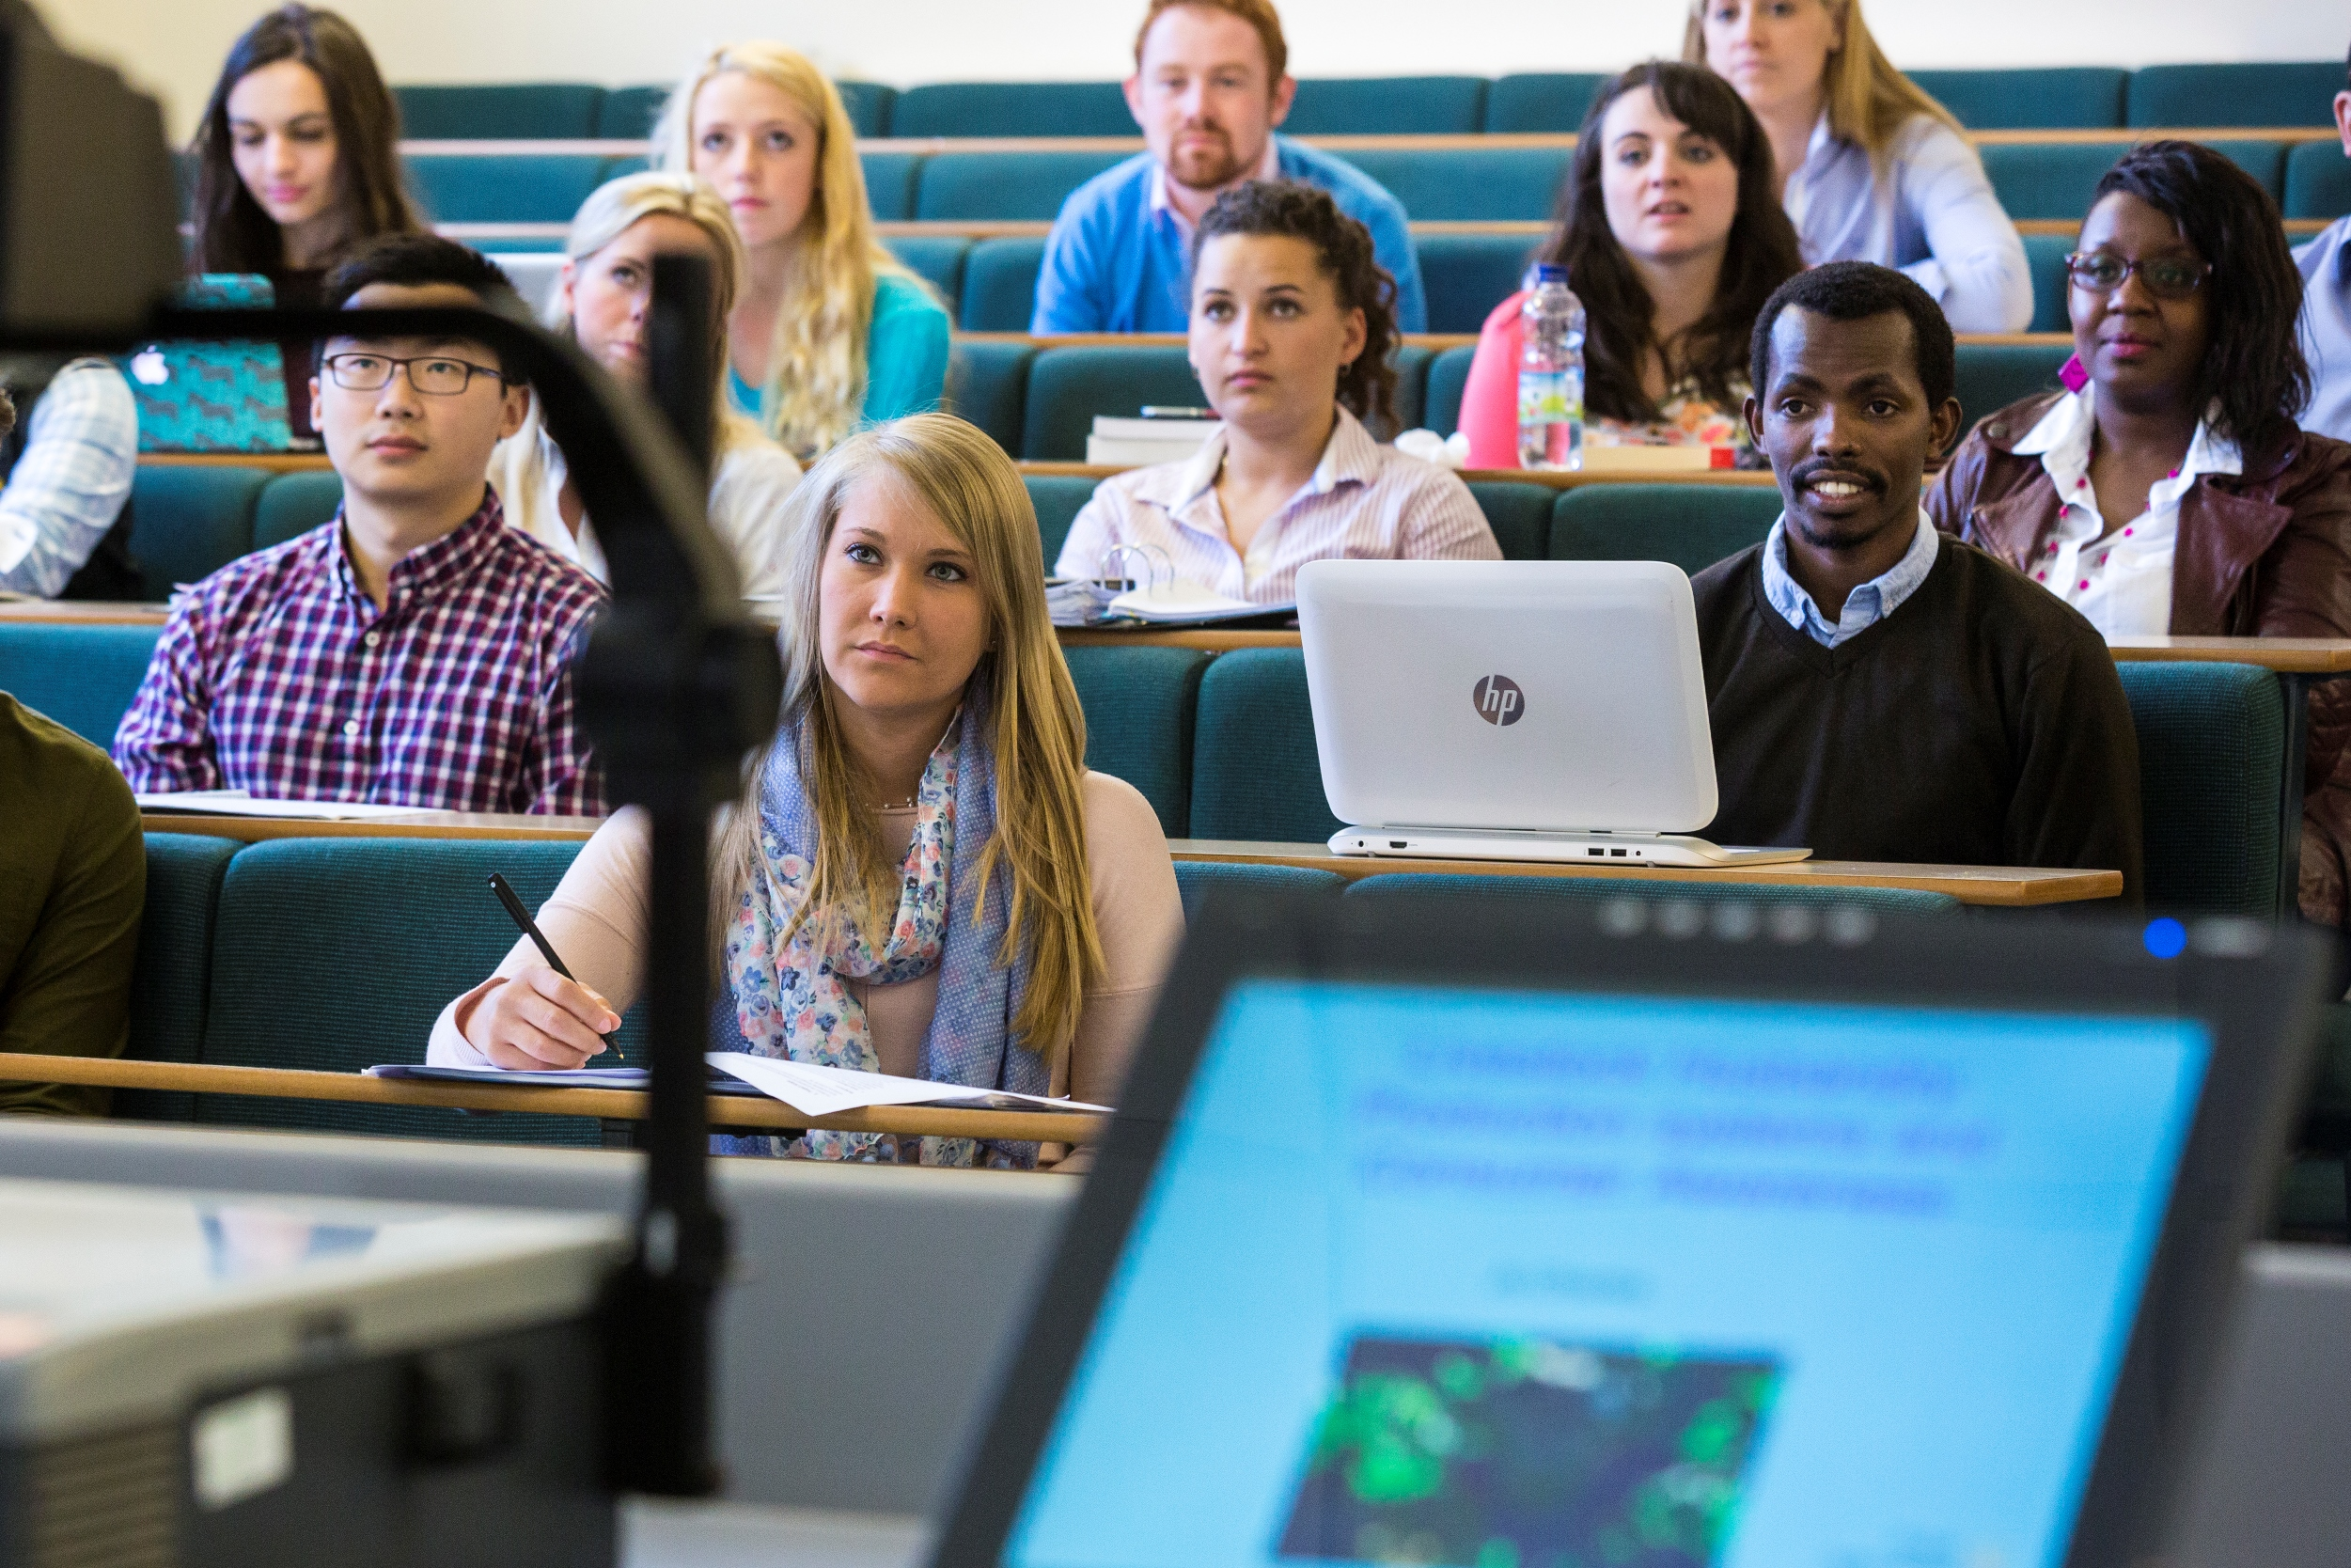 Students in lecture   rau